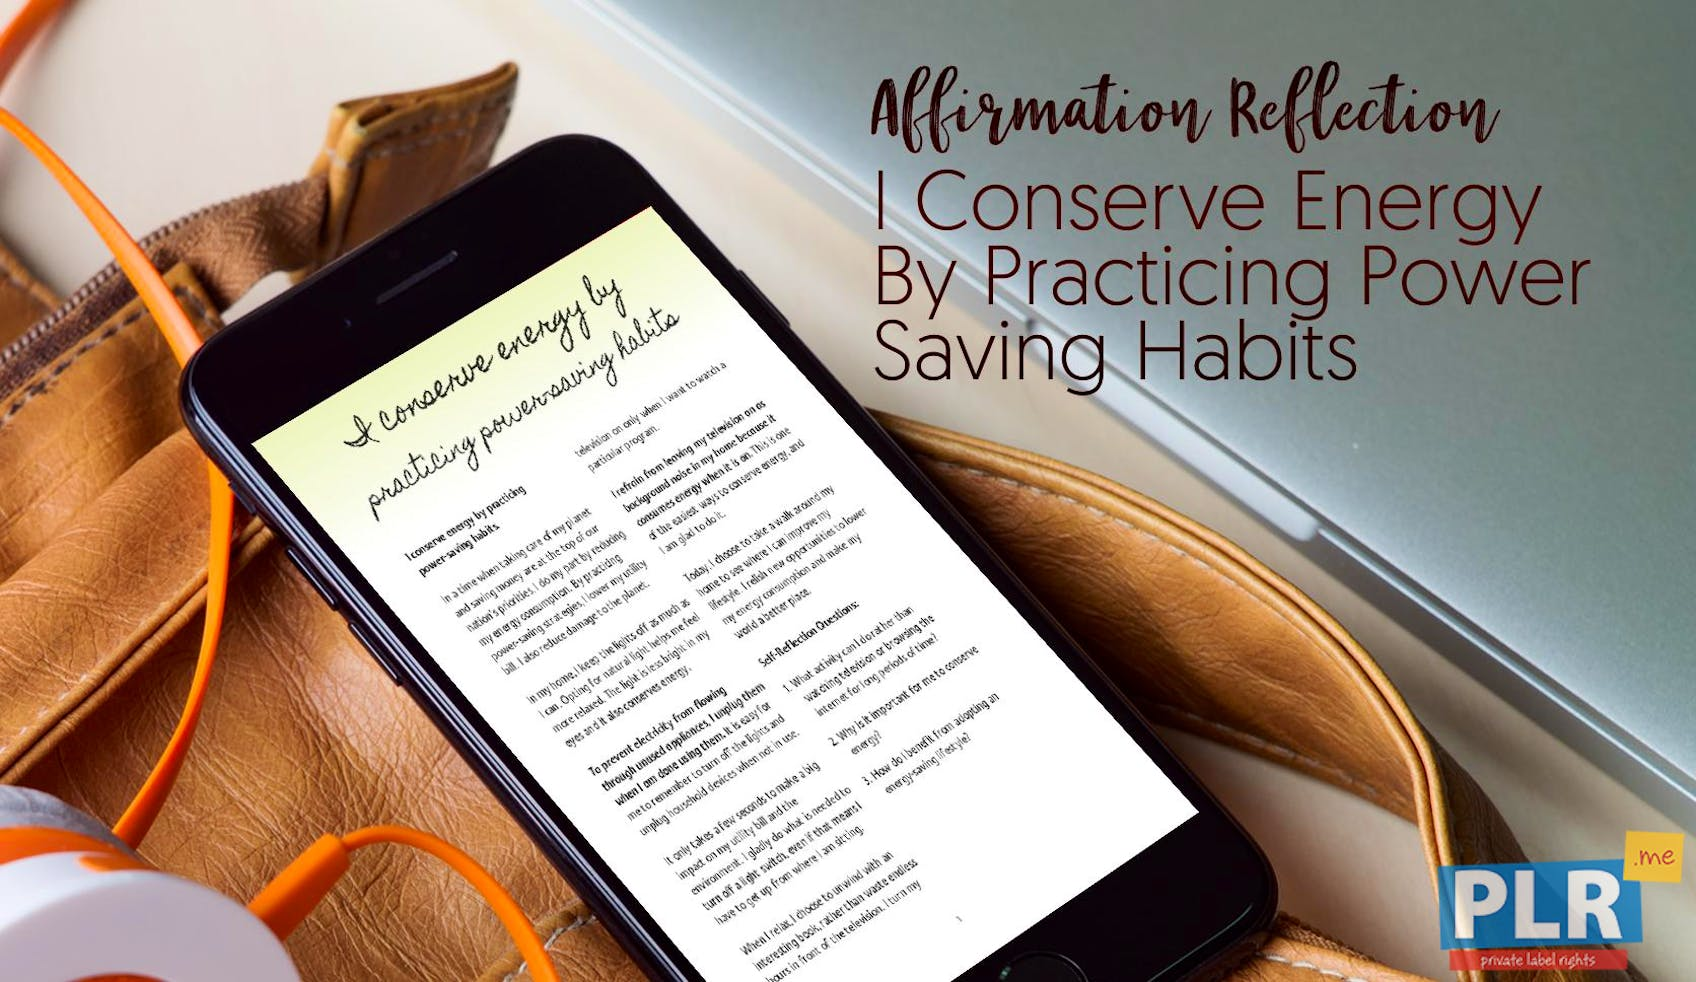 I Conserve Energy By Practicing Power Saving Habits